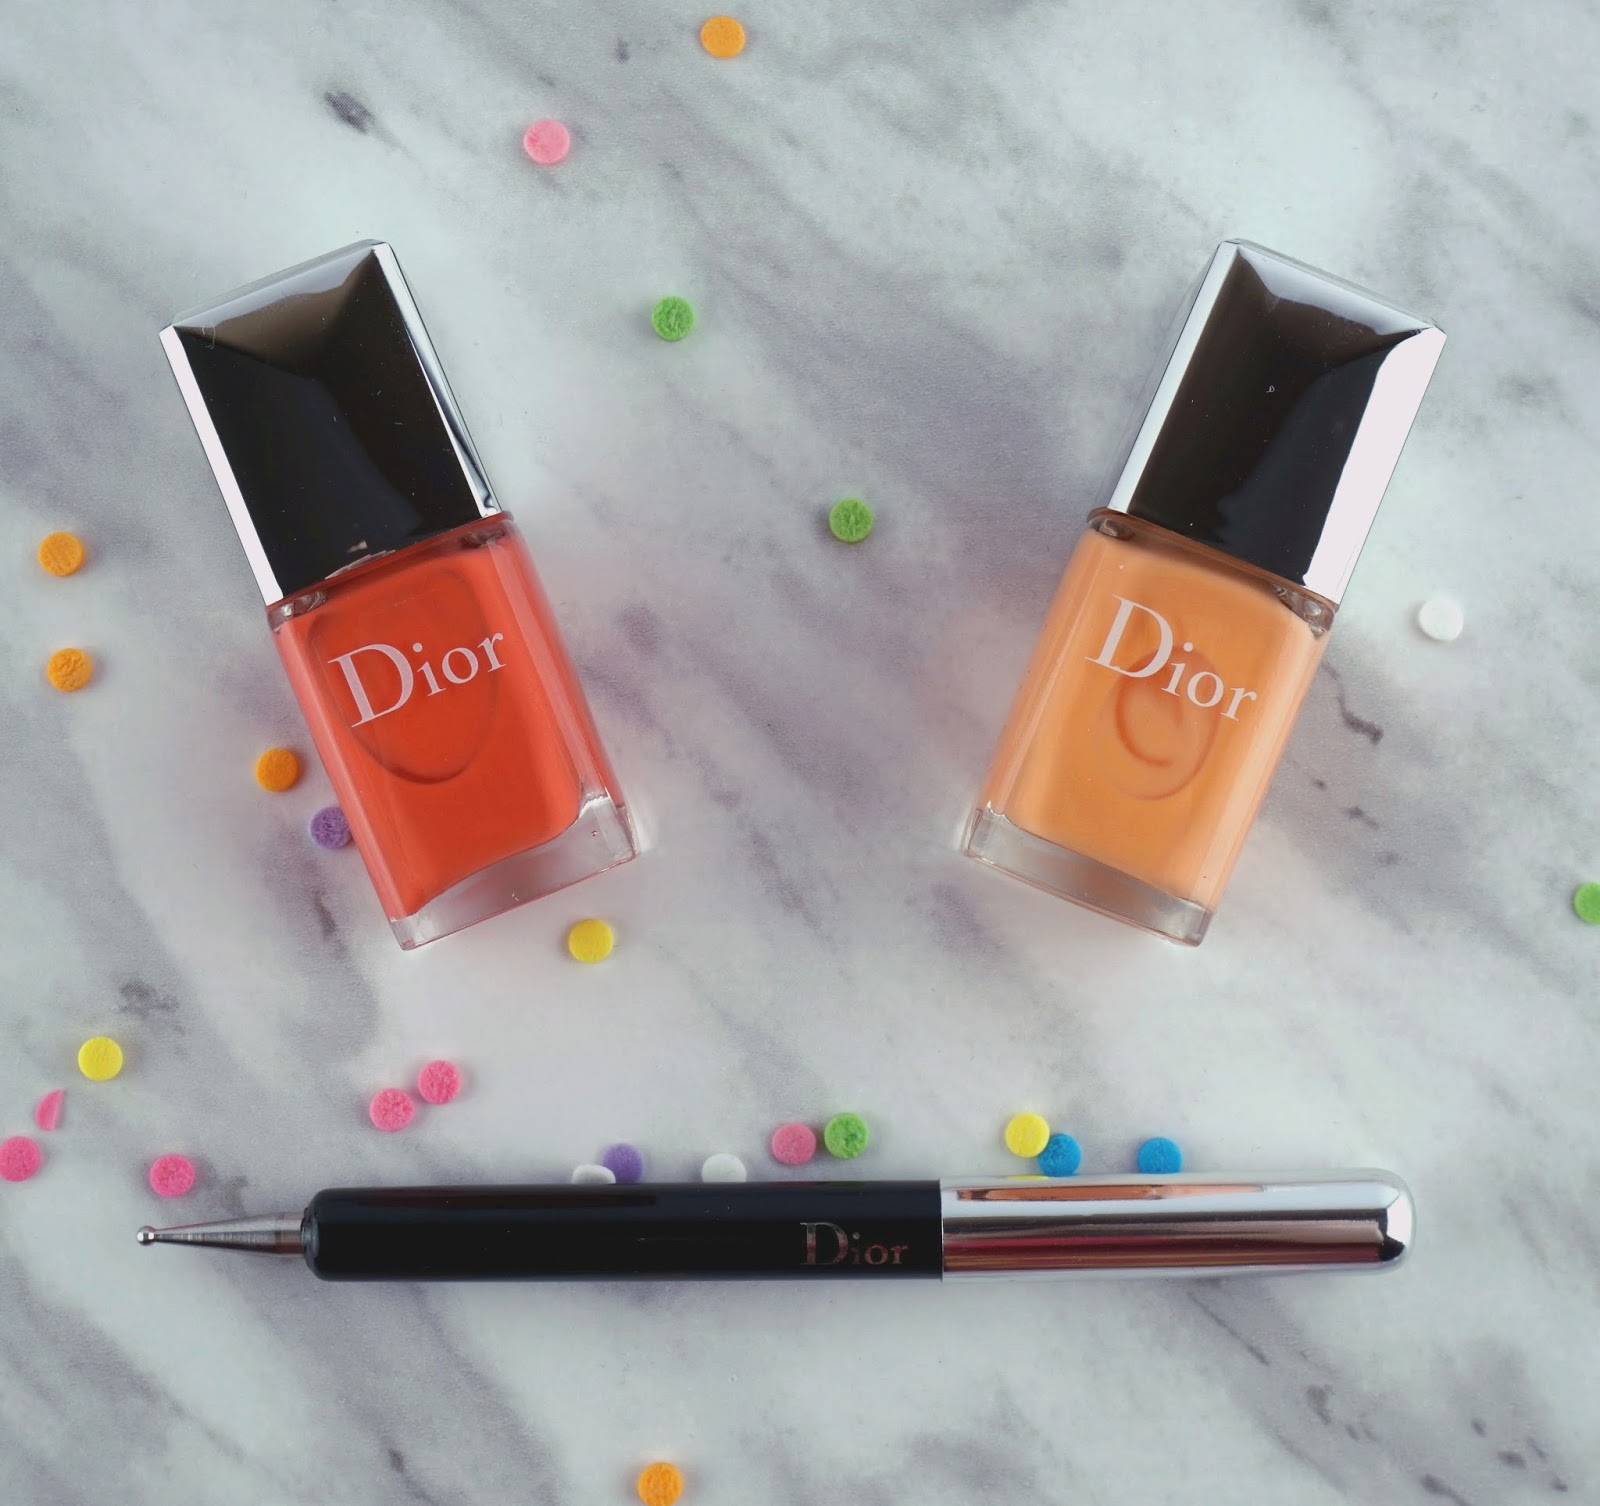 Dior Polka Dots Colour & Dots Manicure Kit Confettis nail art review swatches